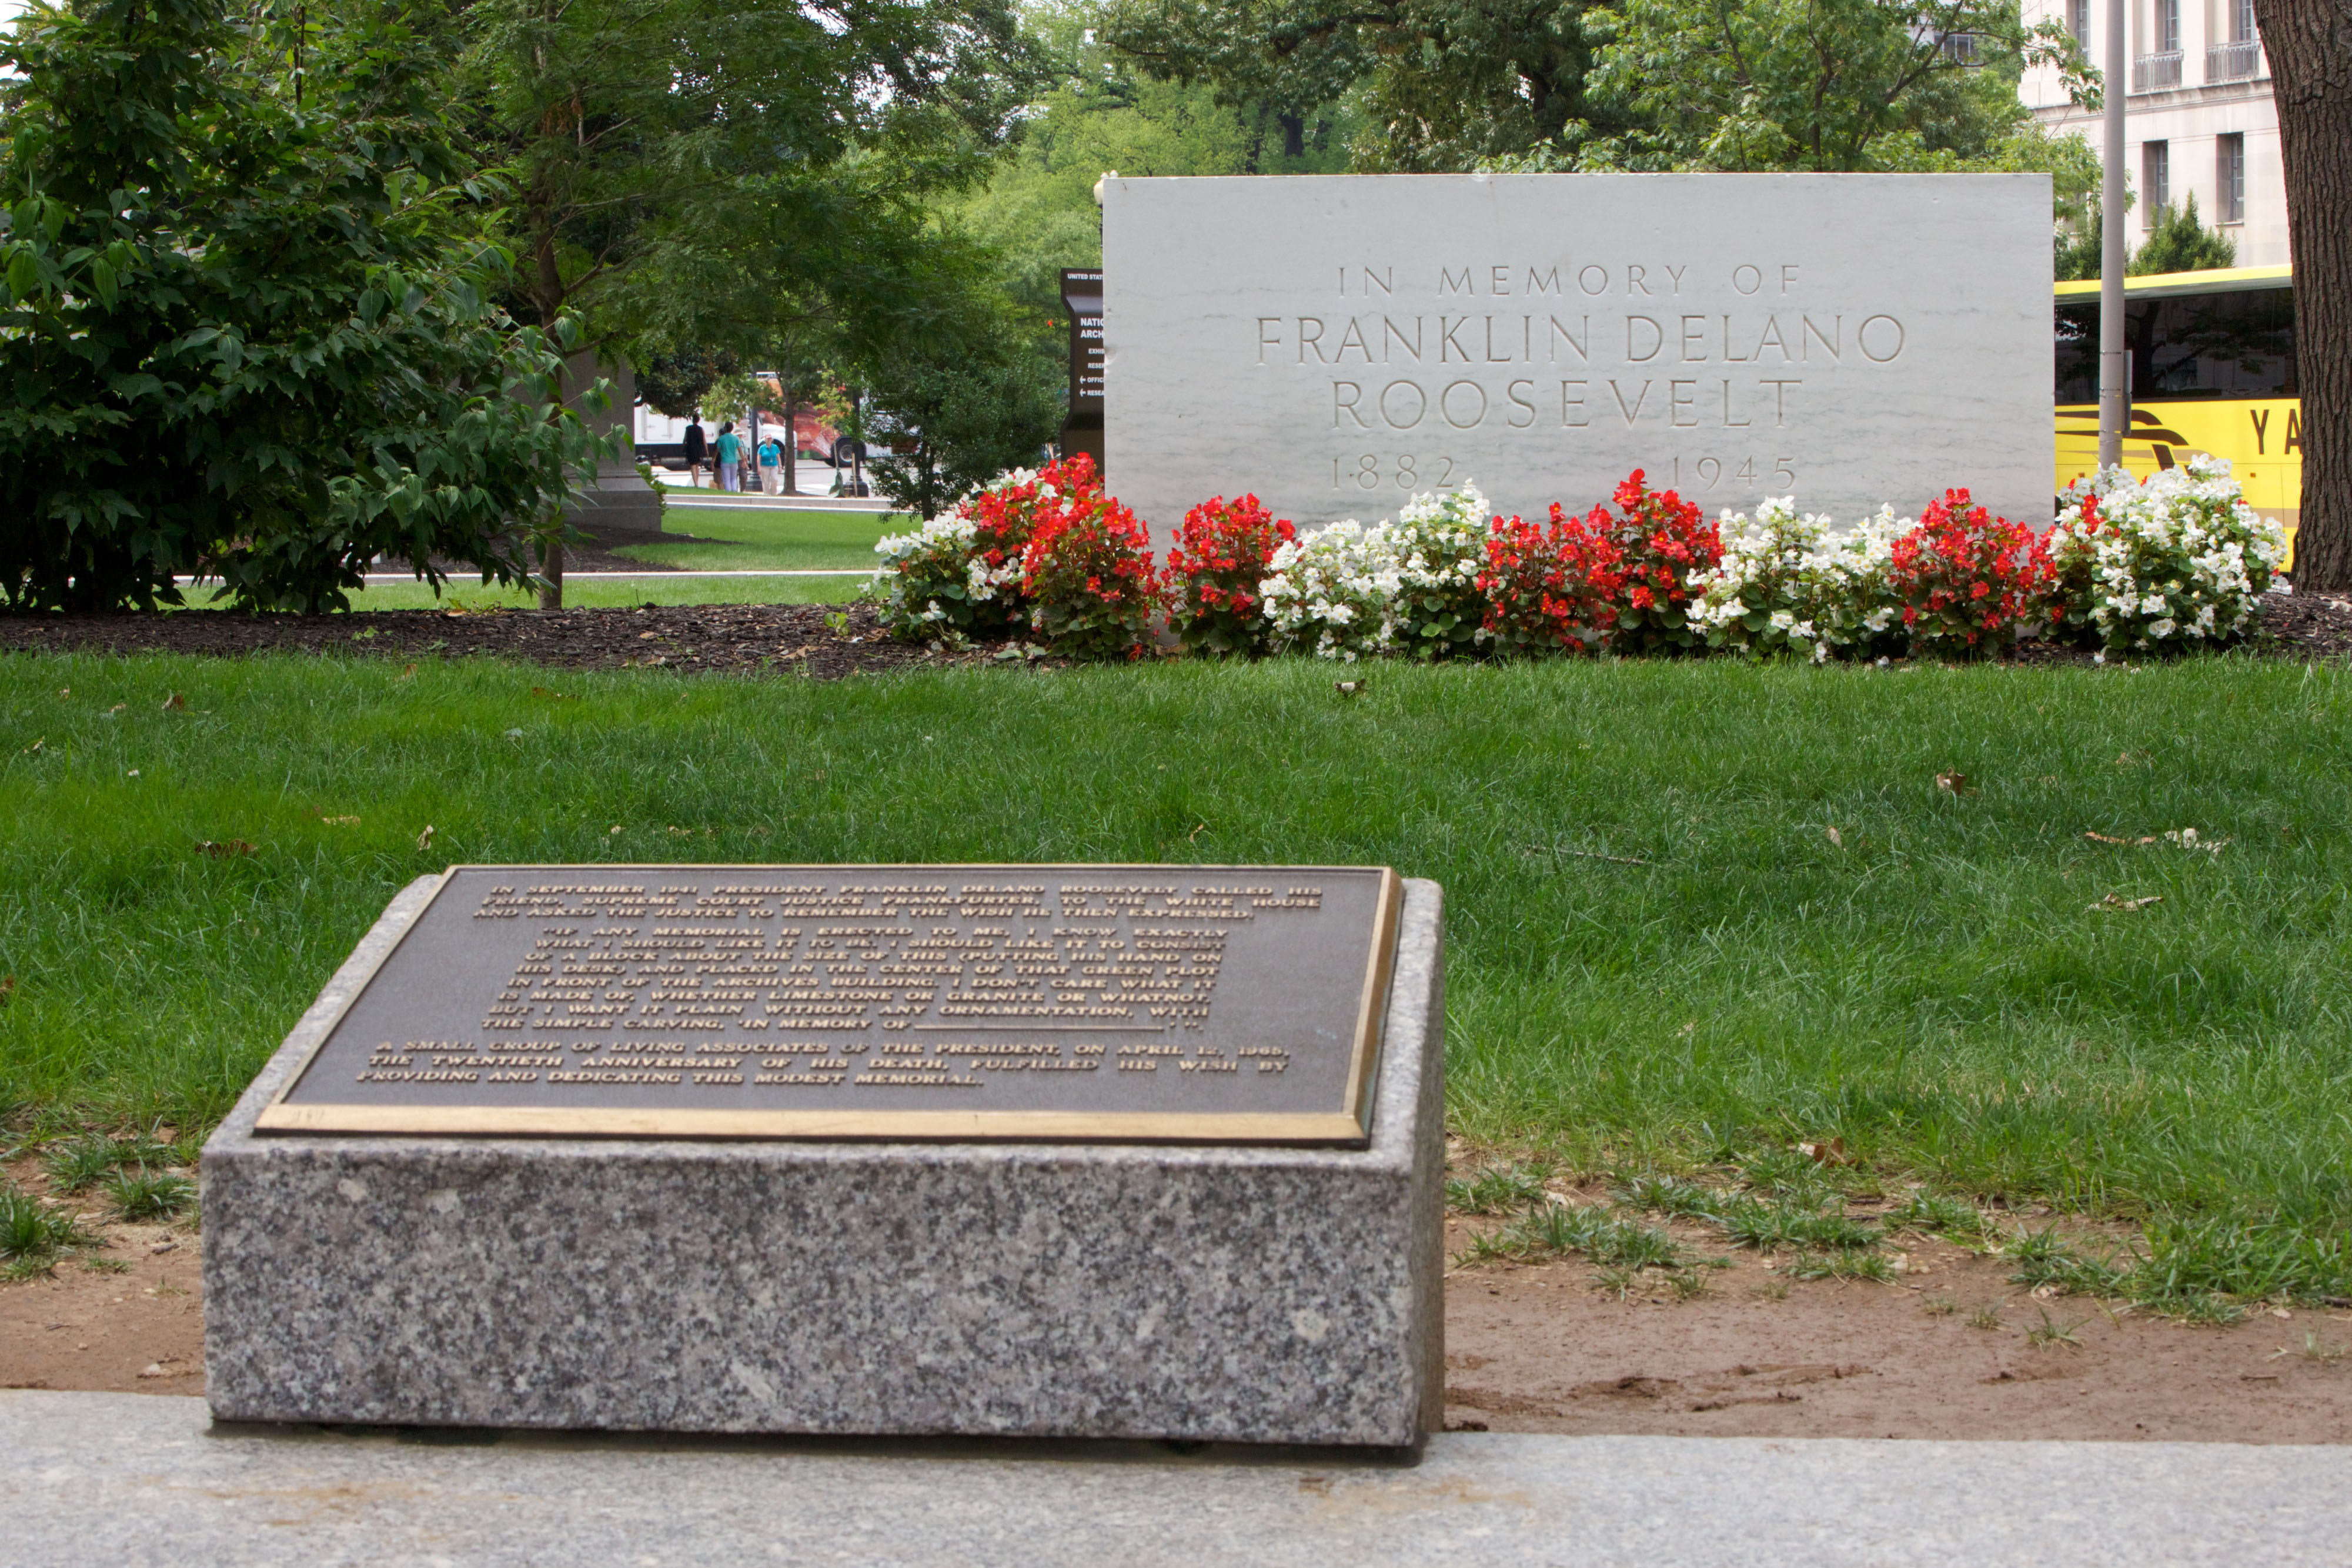 FDR Memorial and plaque, August 6, 2014. (Photo by Jeff Reed, National Archives)